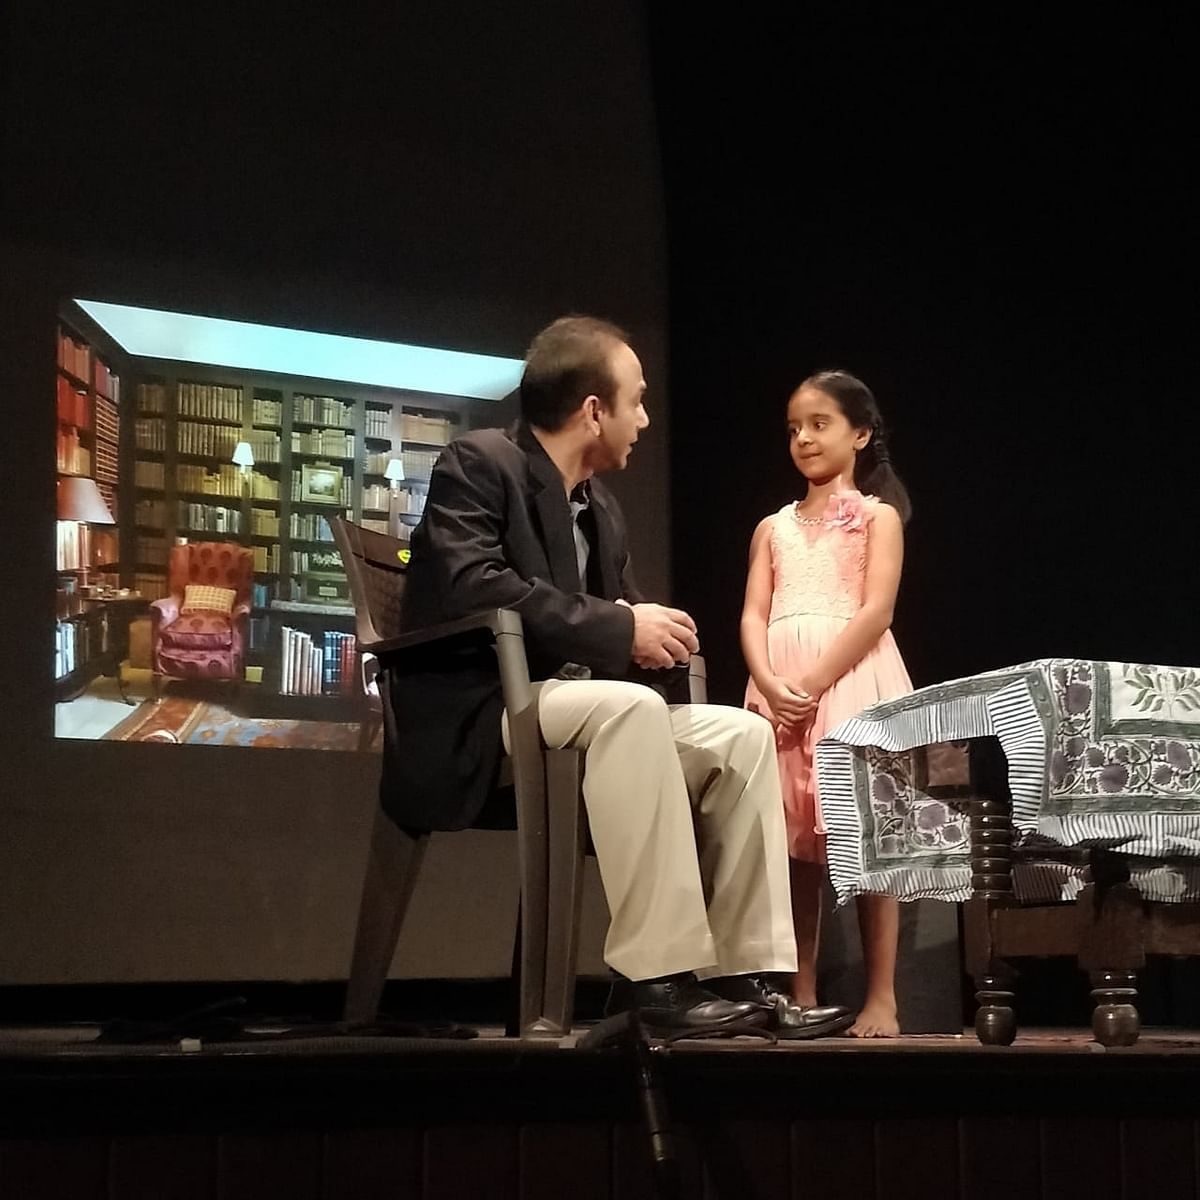 A scene from the play (NH Photo)